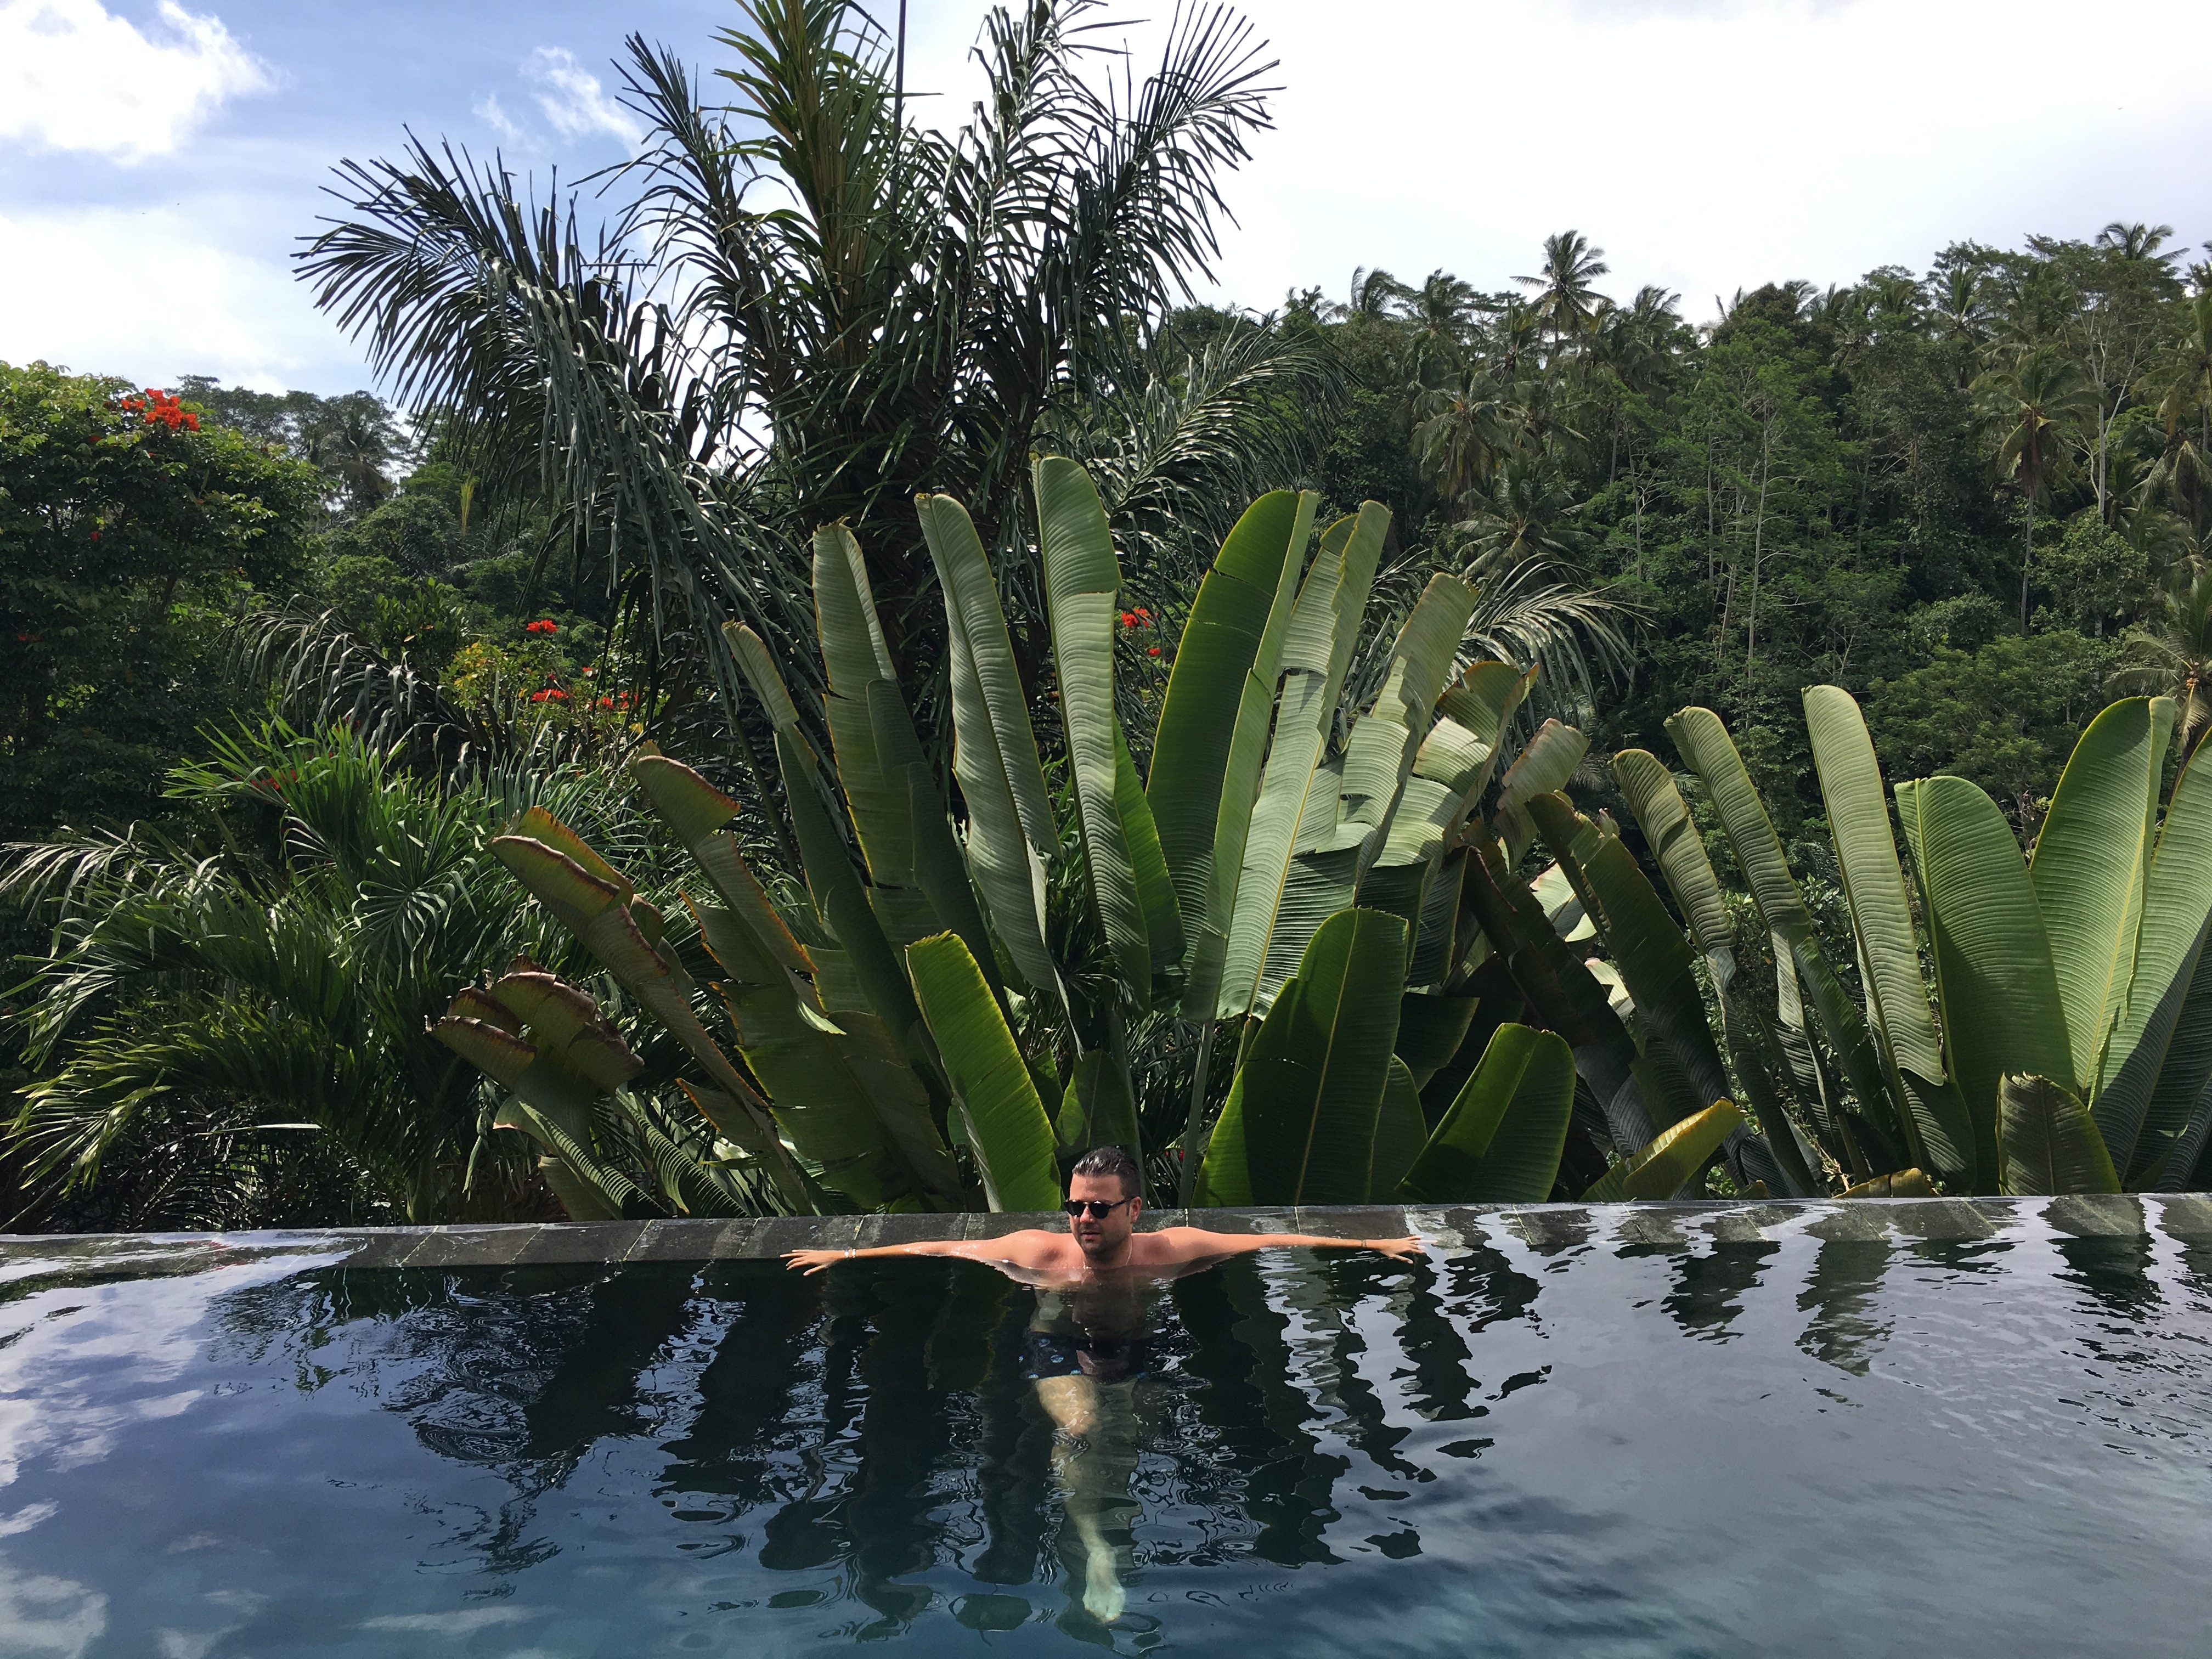 Ubud Bali - Where the world collides with tranquility